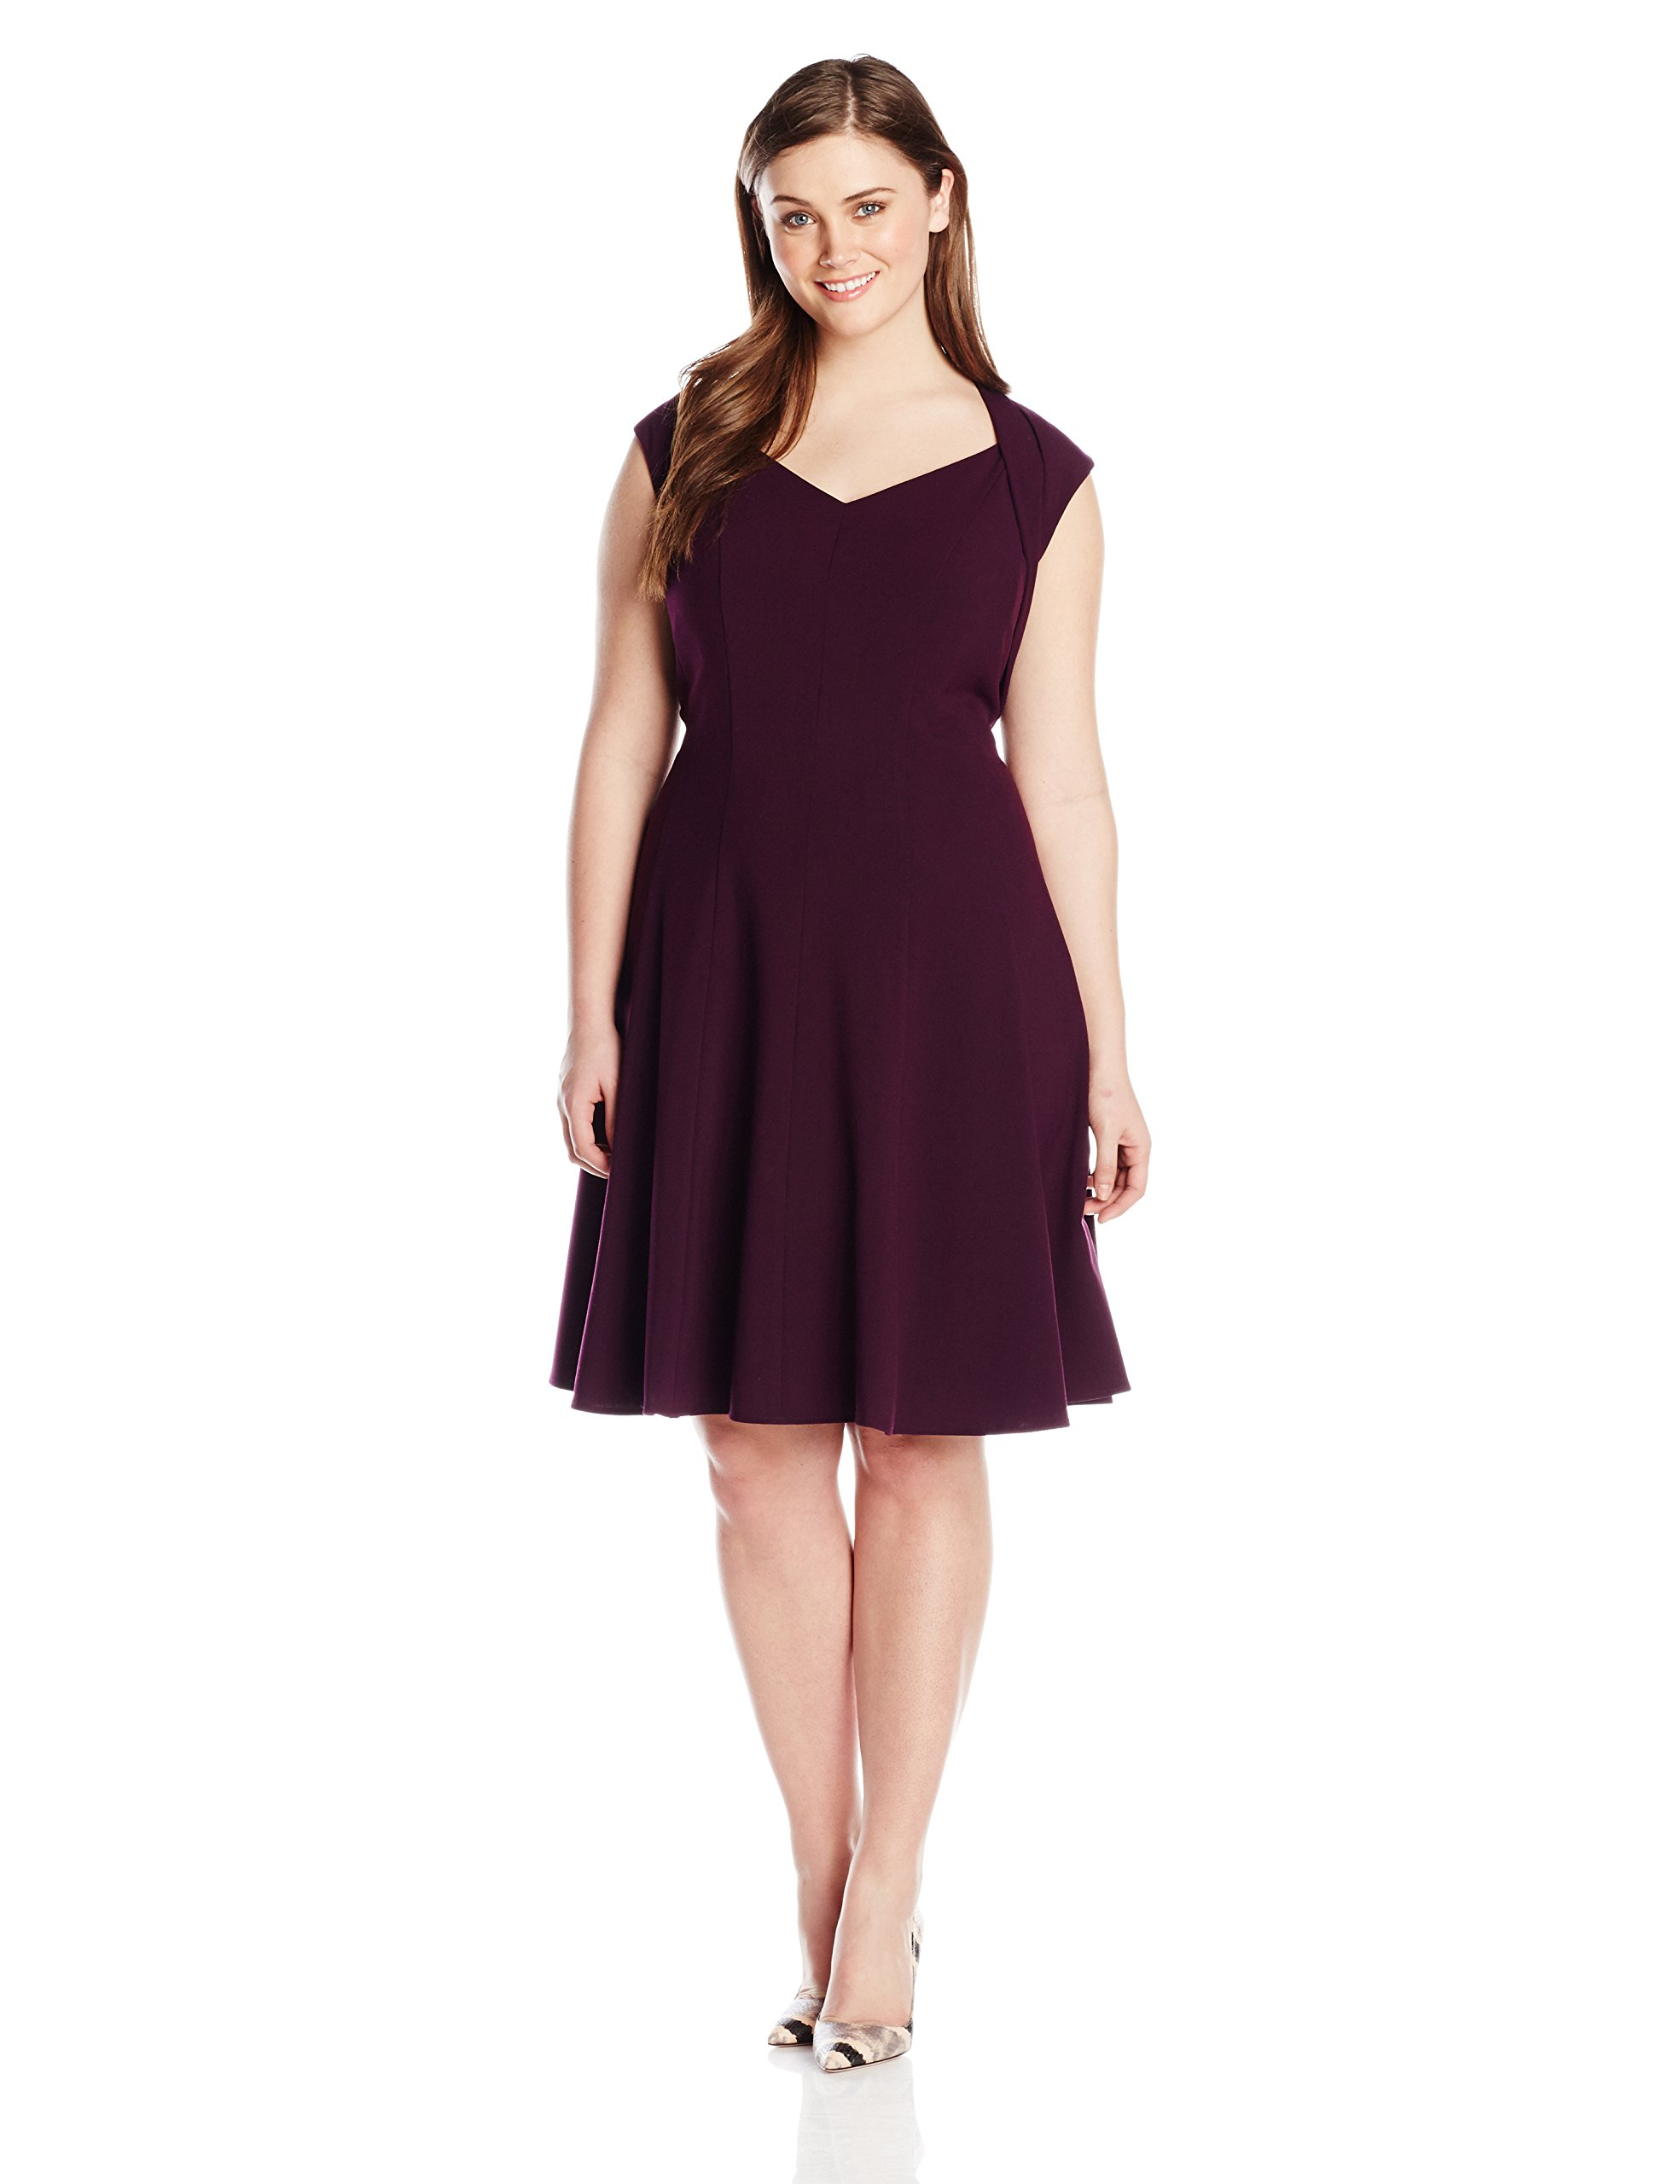 Calvin Klein Women's Plus-Size V-Neck Fit and Flare Dress in Aubergine